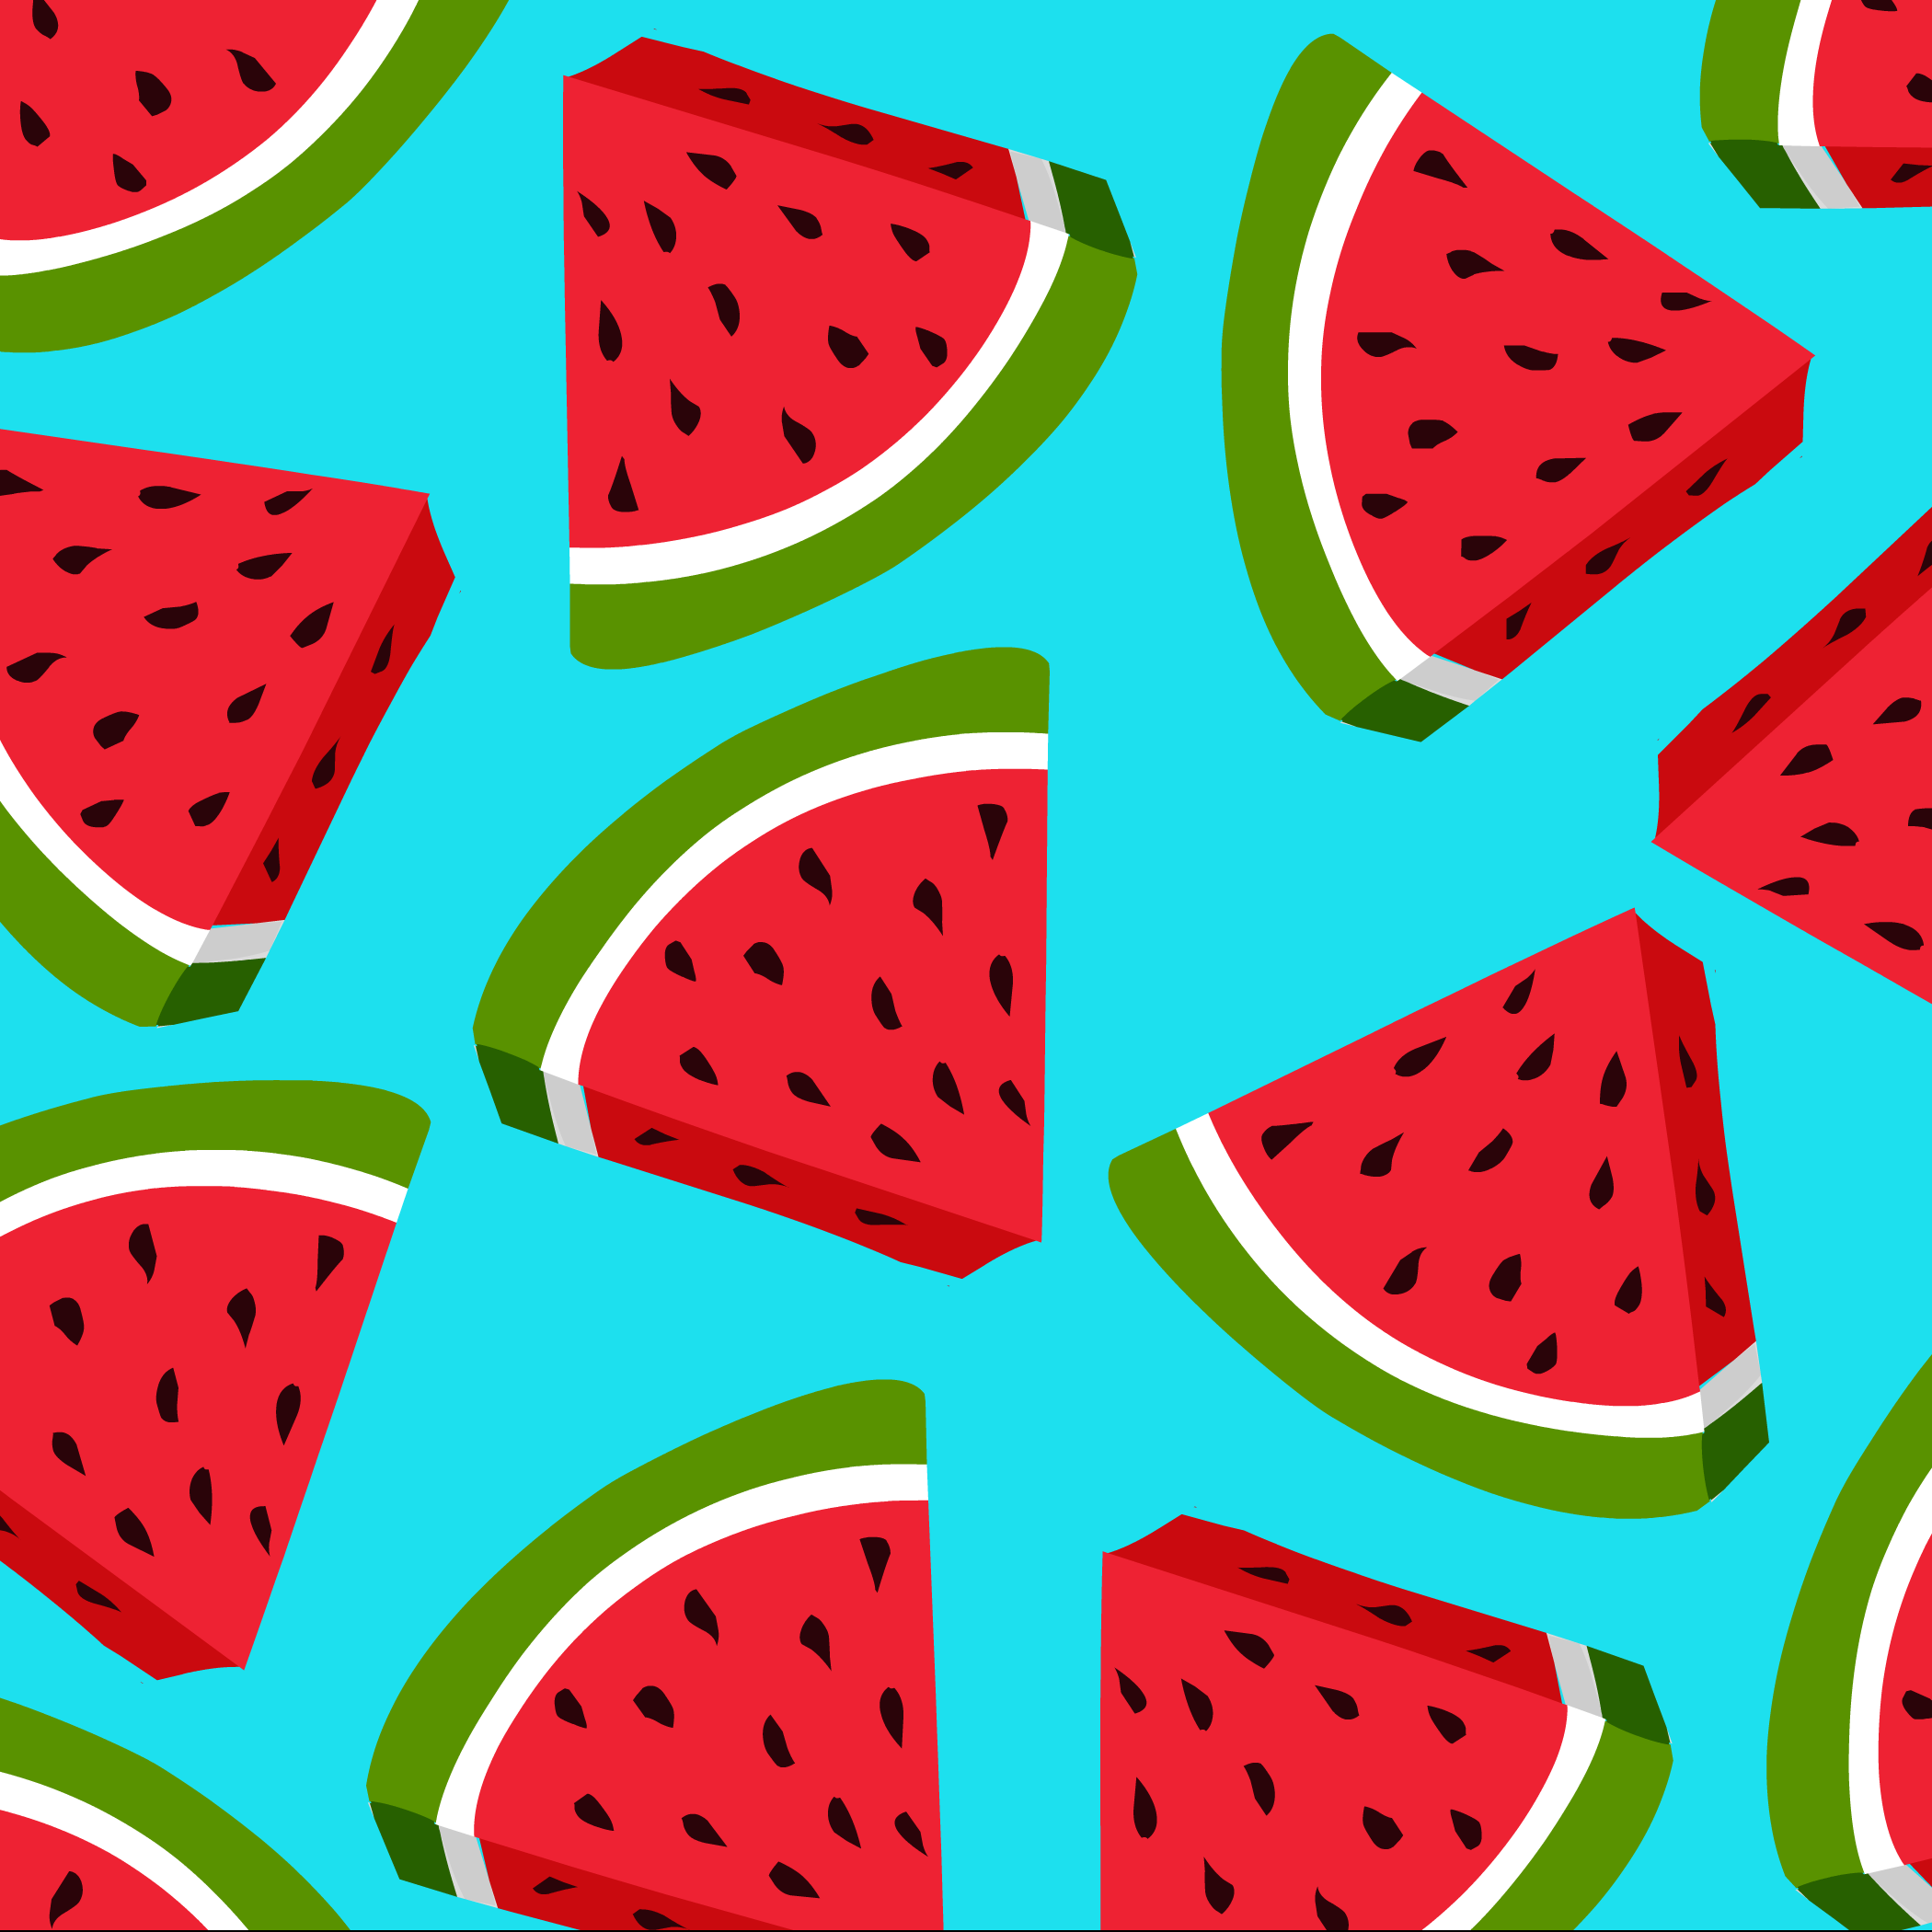 tumblr backgrounds watermelon background - photo #32